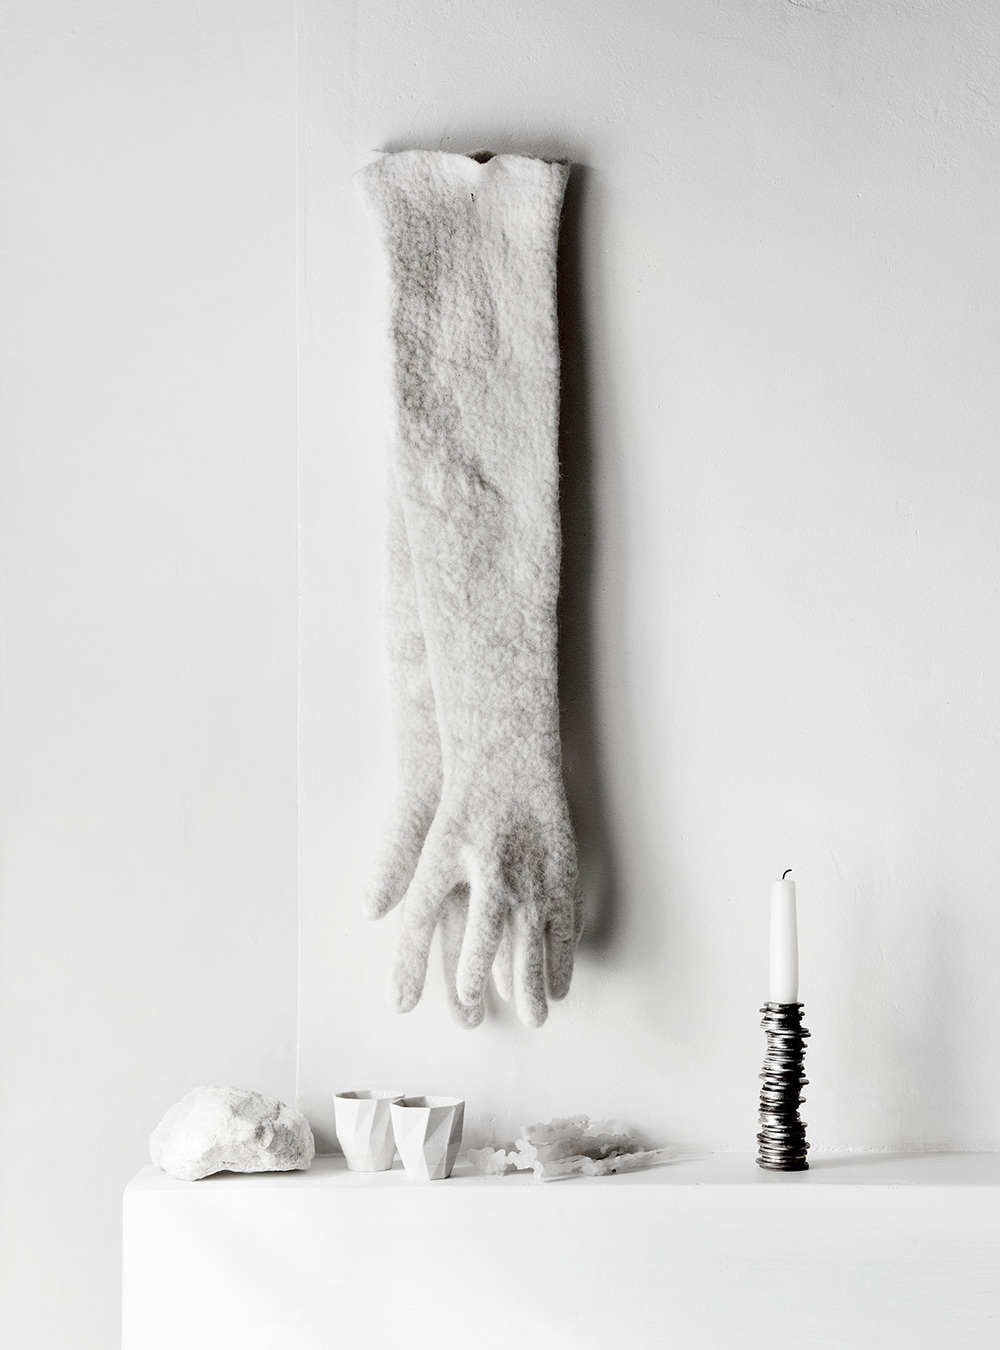 Sofie Lachaert and Luc D'Hanis 'Coin' candelabra and felted gloves. Photography by Sharyn Cairns.